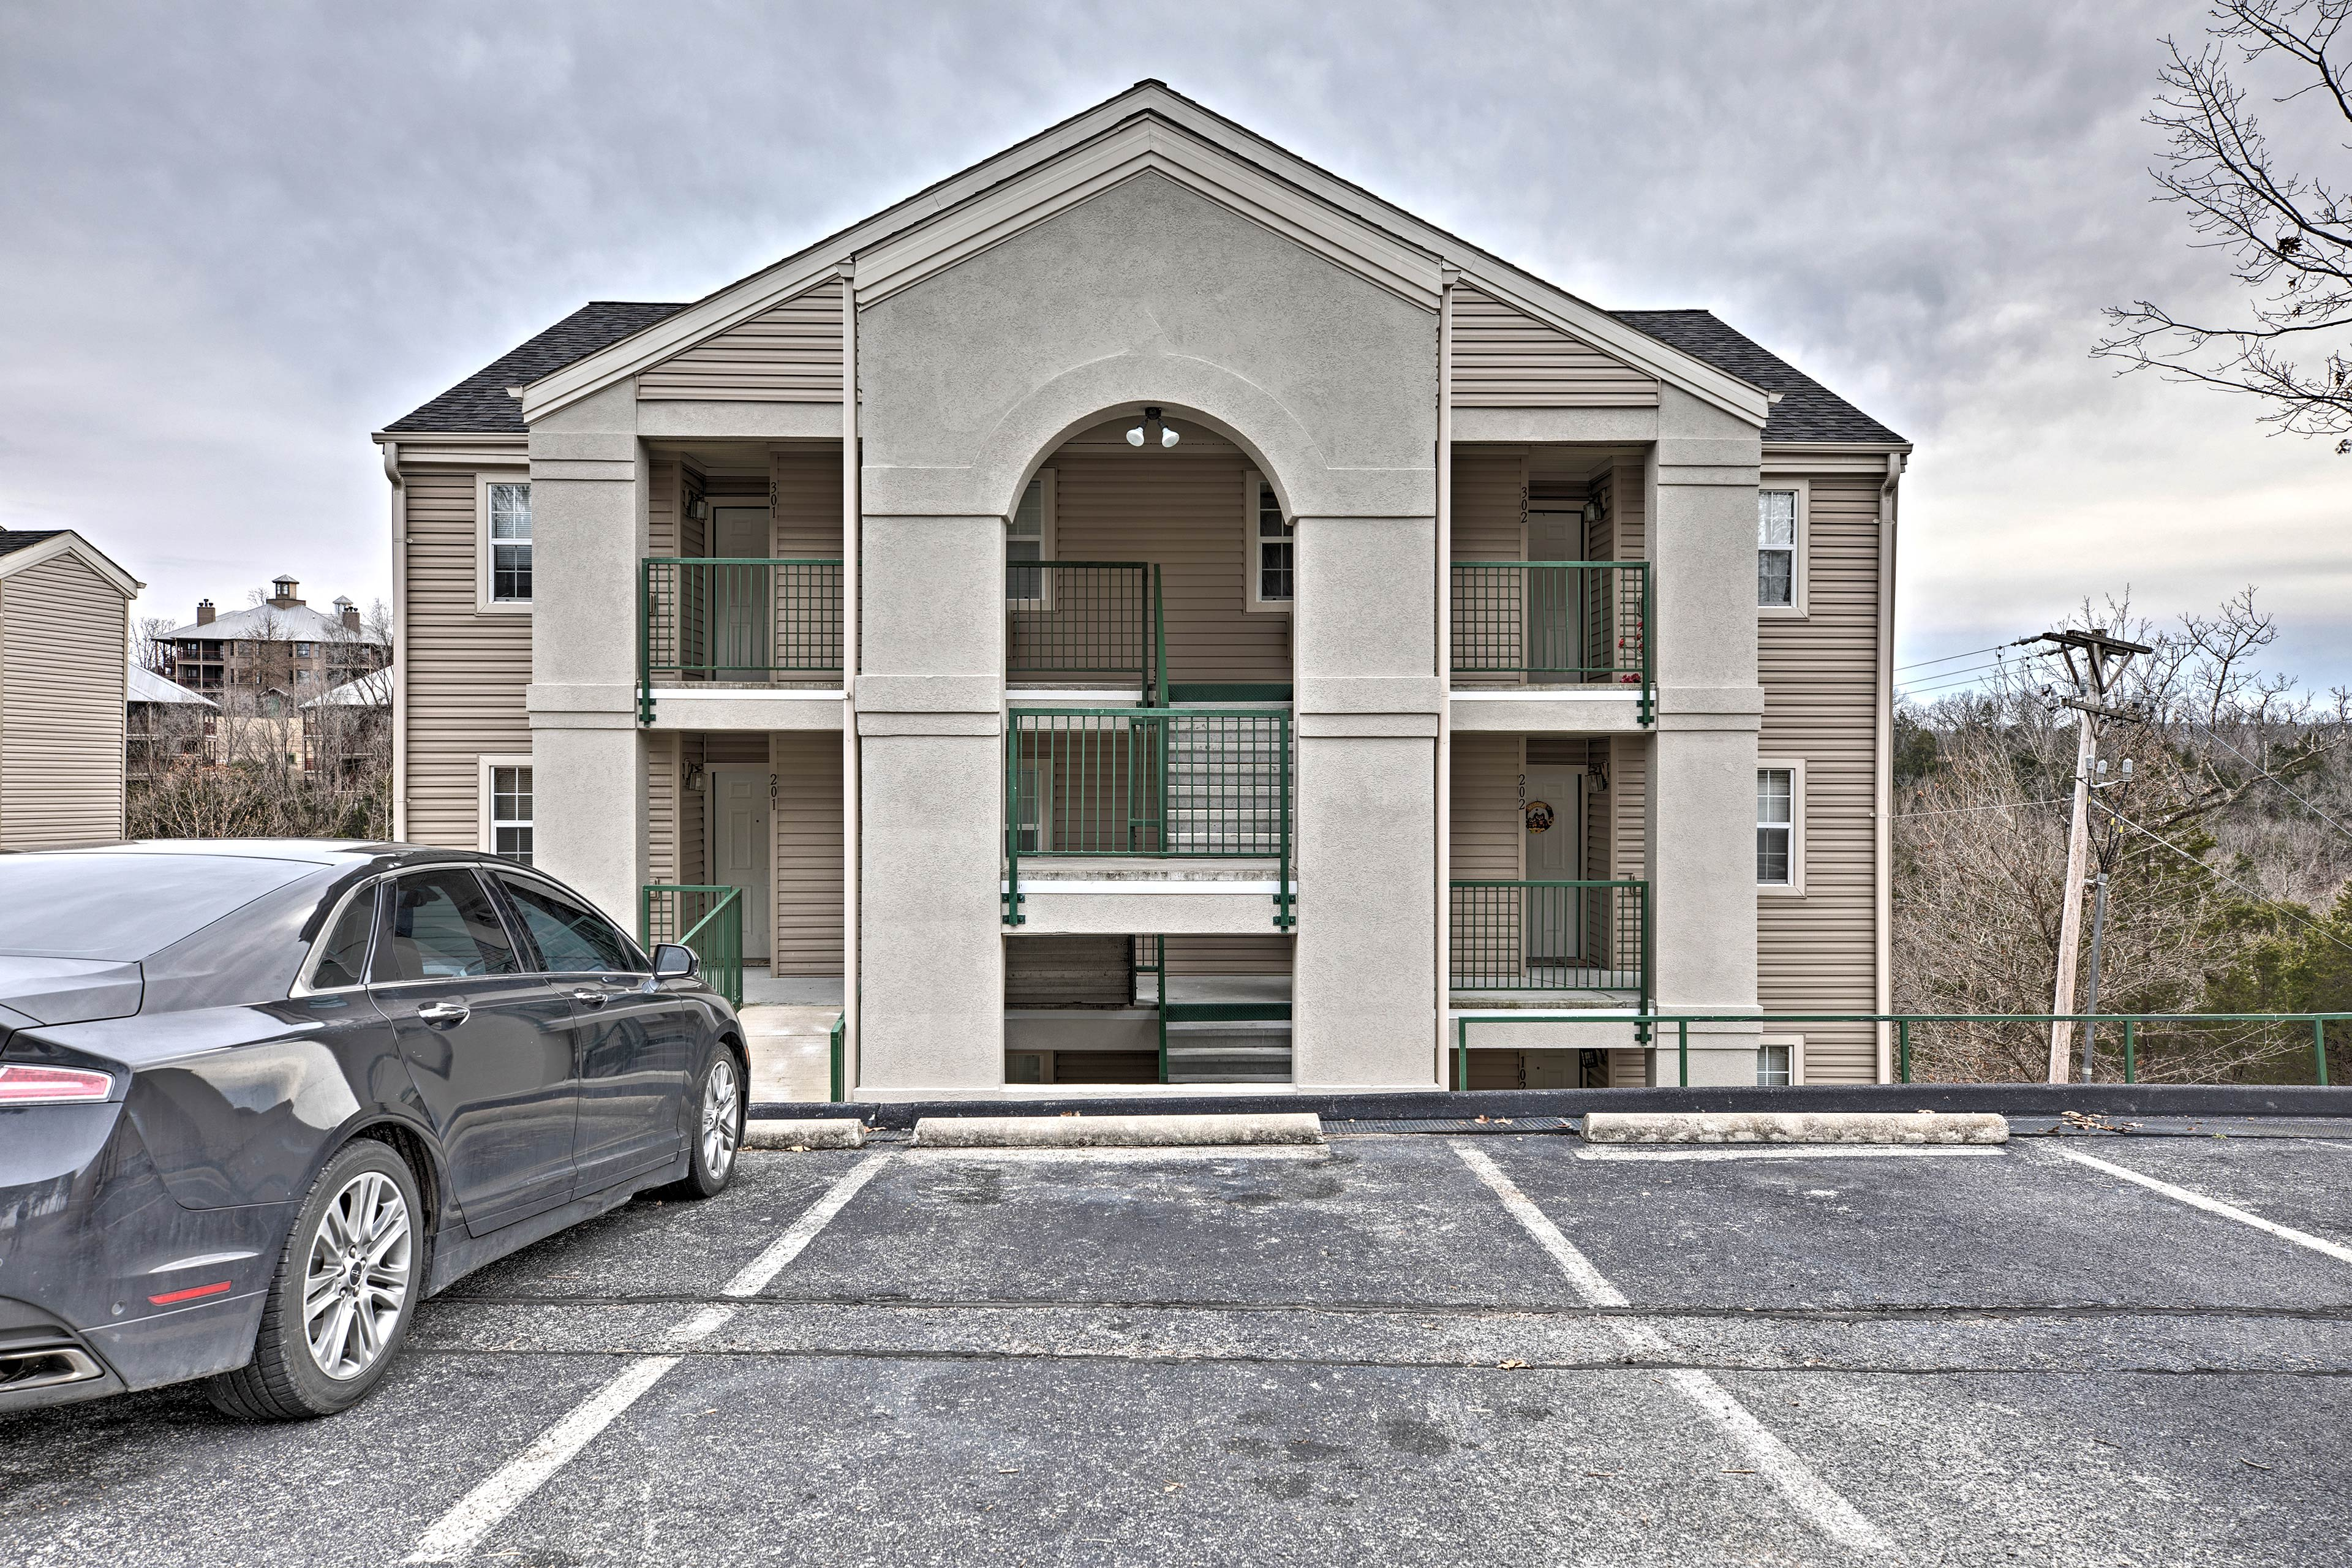 Bring a car or 2 for convenient parking outside this vacation rental's doors.